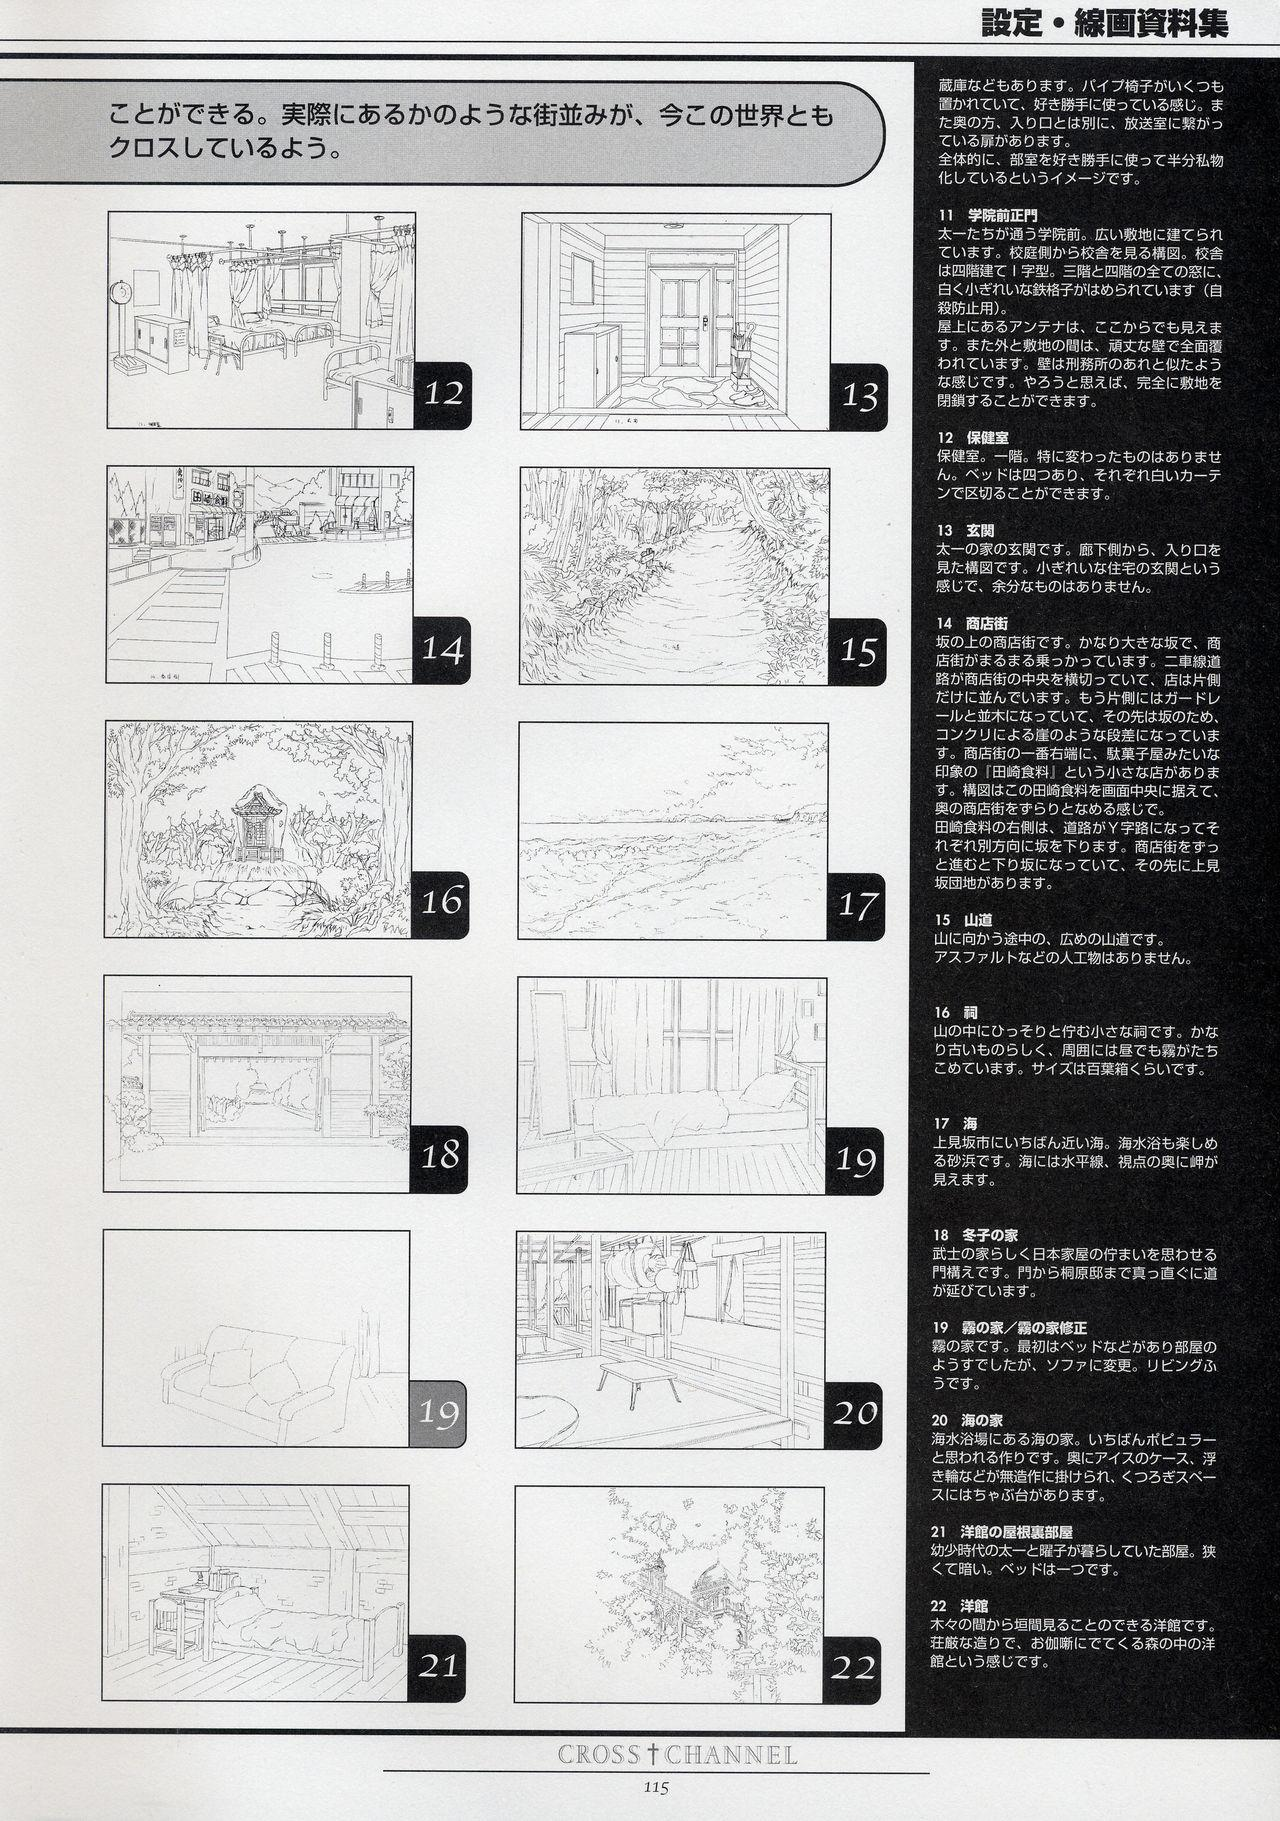 CROSS†CHANNEL Official Setting Materials 125